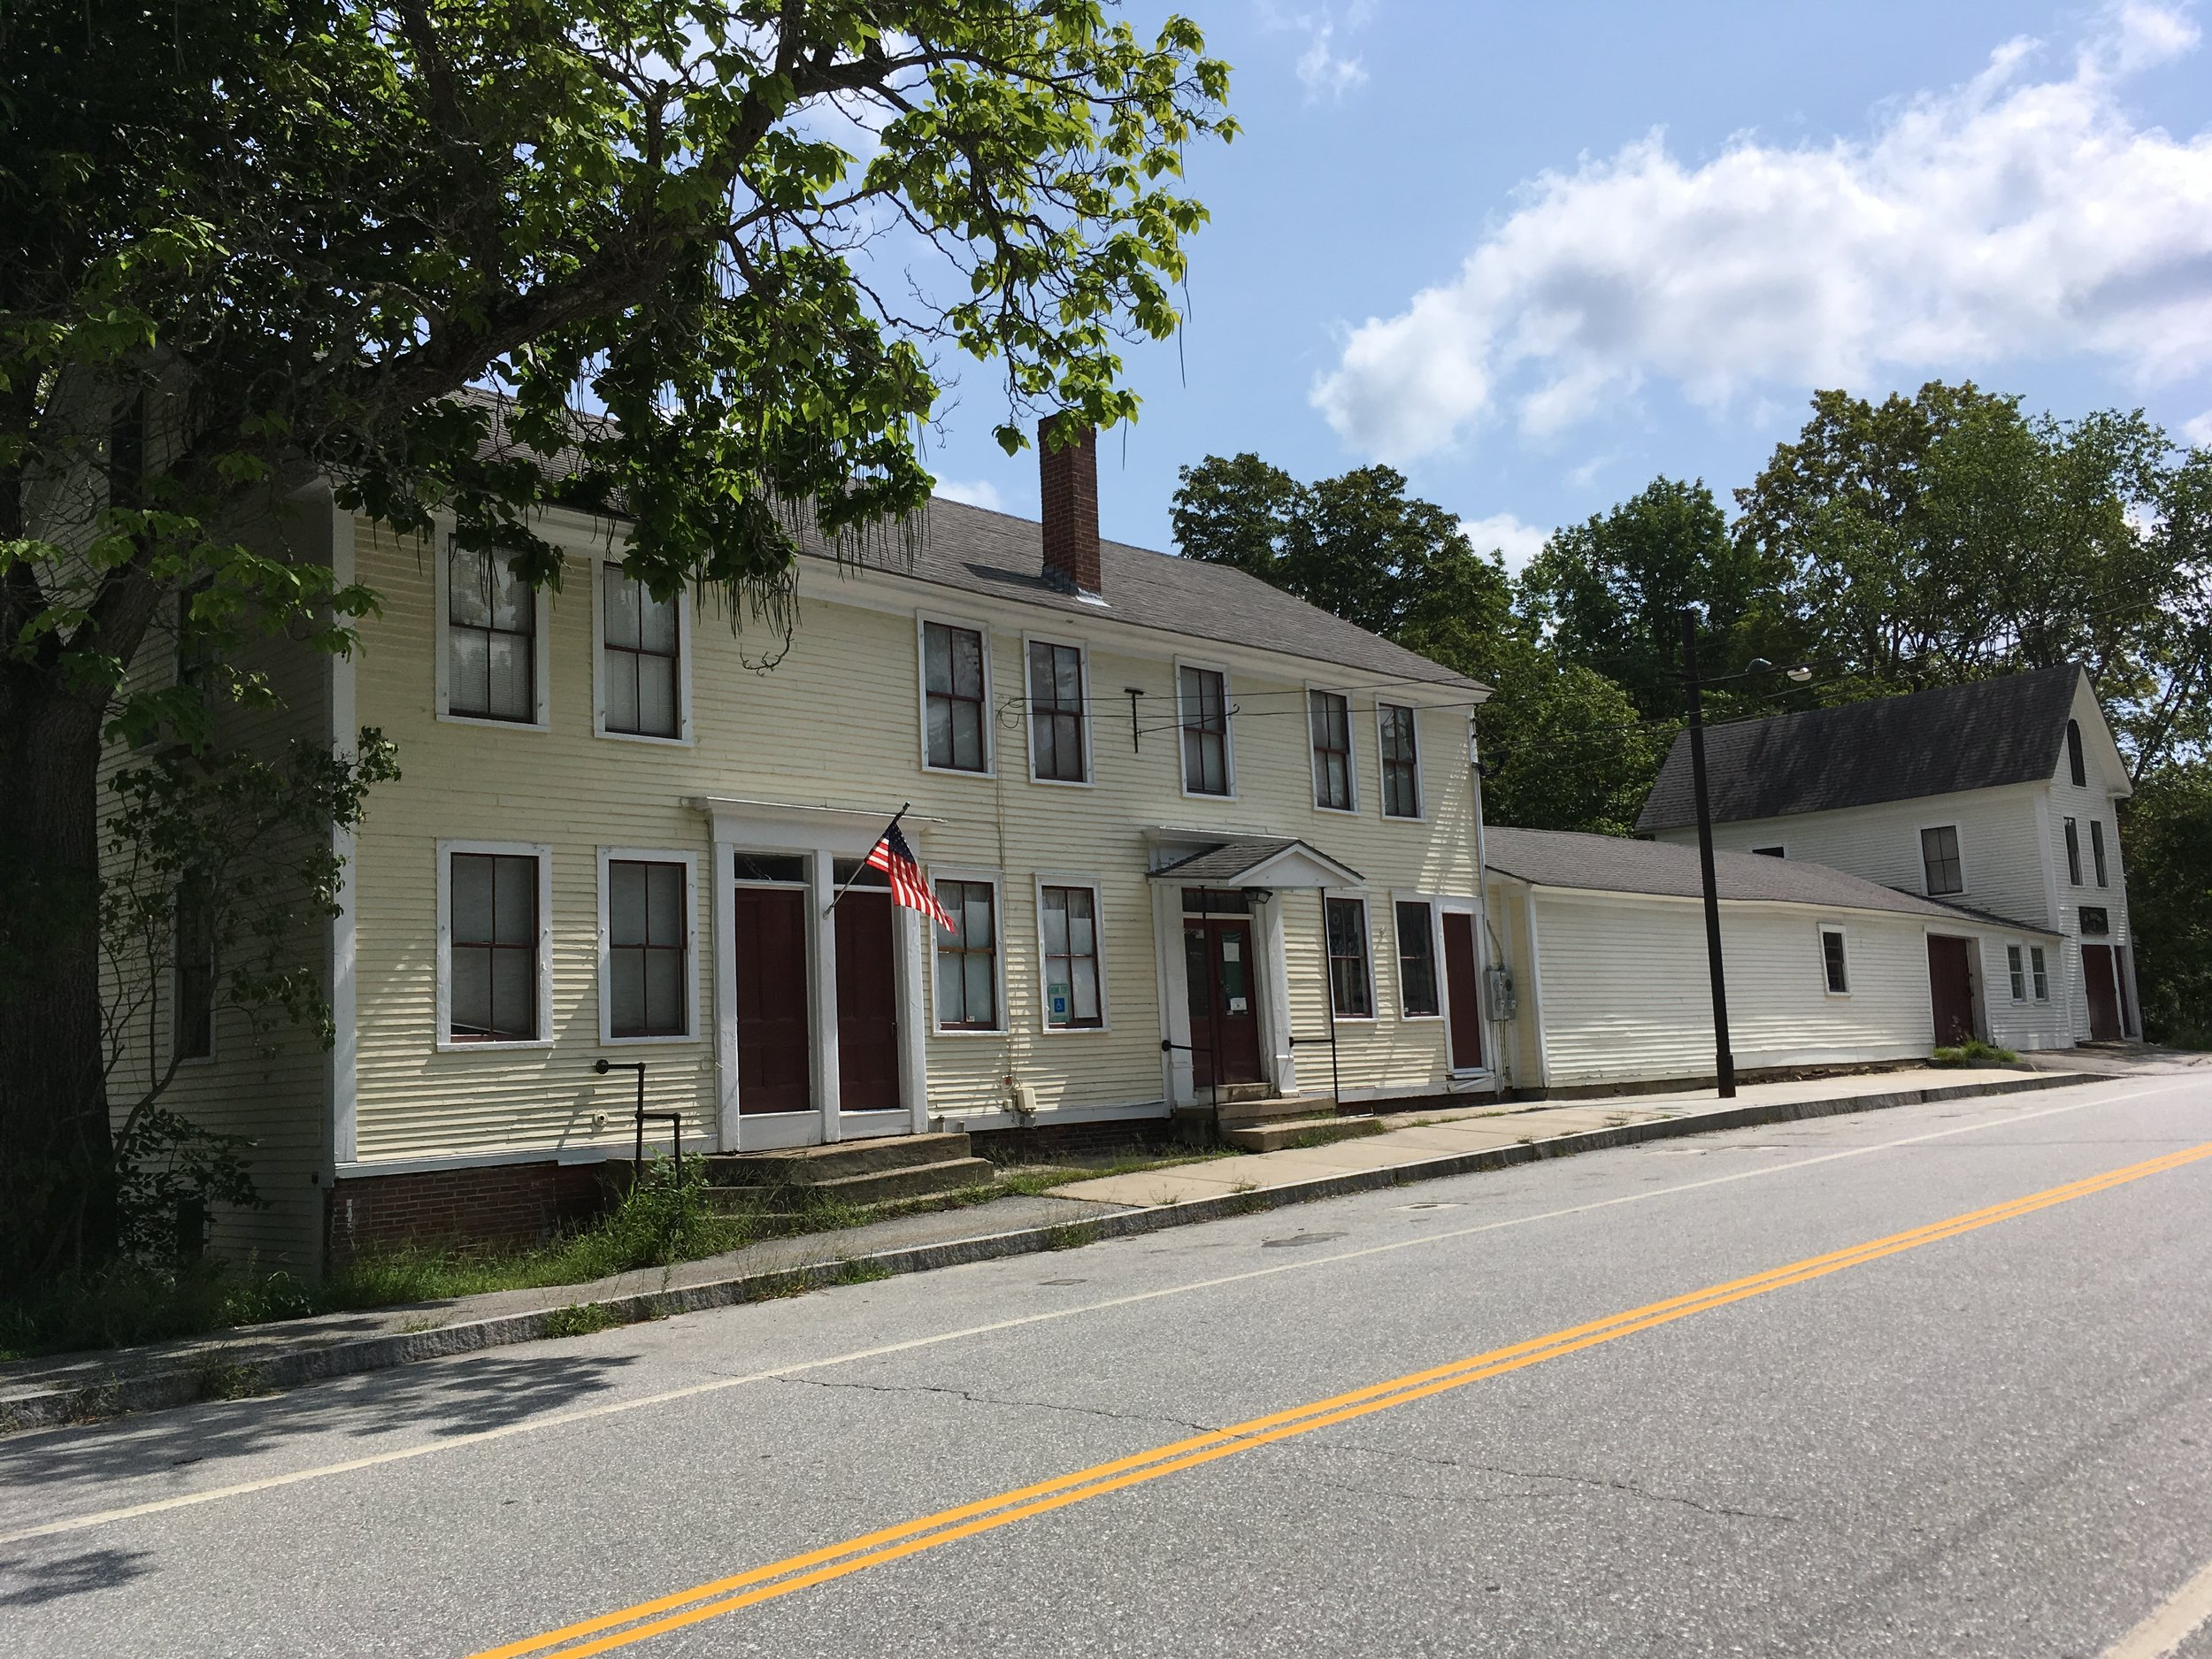 Francestown's General Store is expected to re-open this fall under a new CSE ownership model.